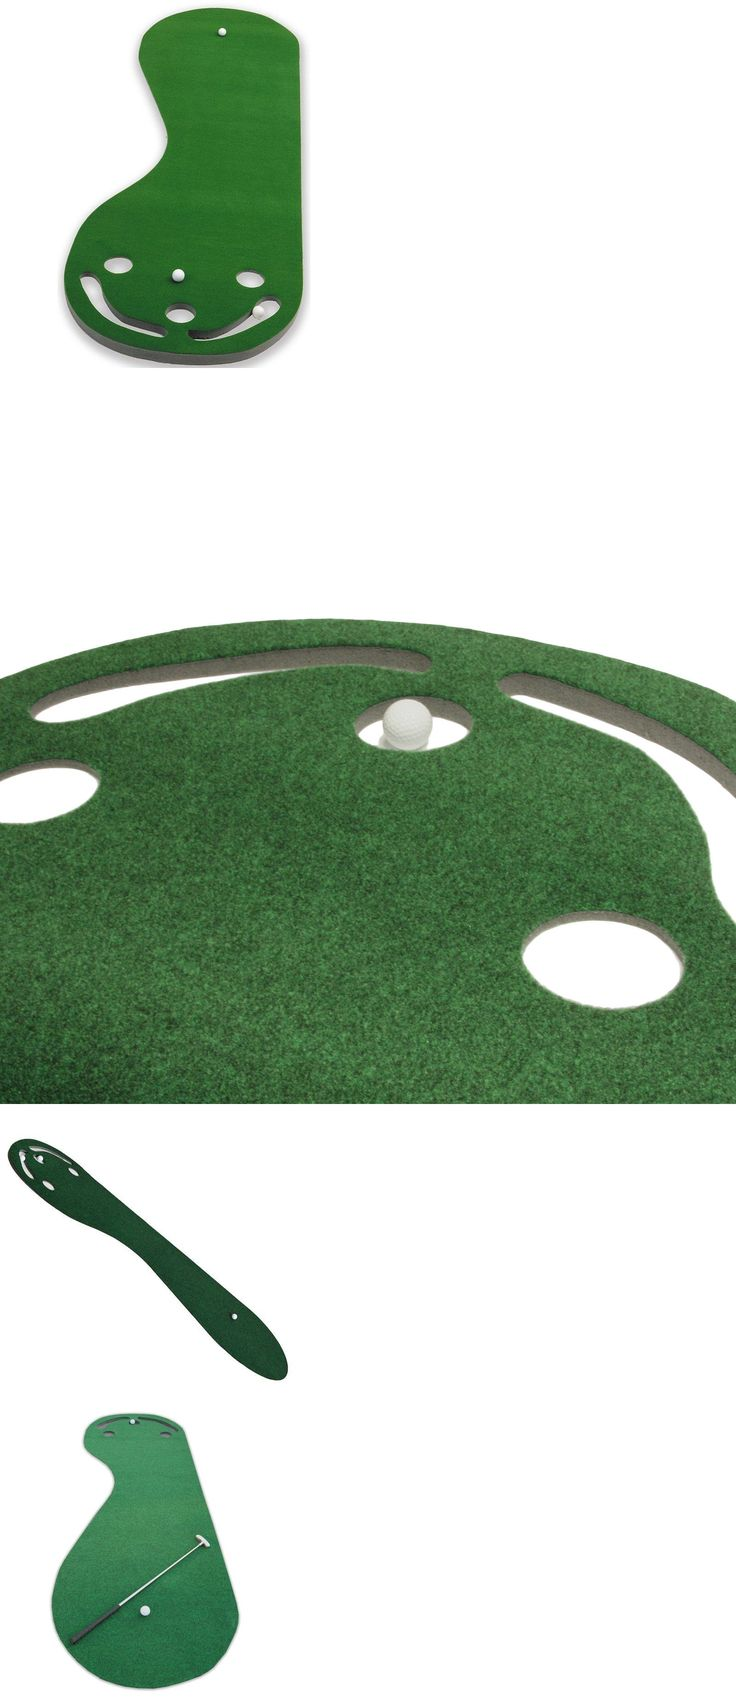 Putting Greens and Aids 36234: Practice Putting Green Golf Indoor Mat Training Aid Equipment Grassroots Par 3 -> BUY IT NOW ONLY: $41.93 on eBay!